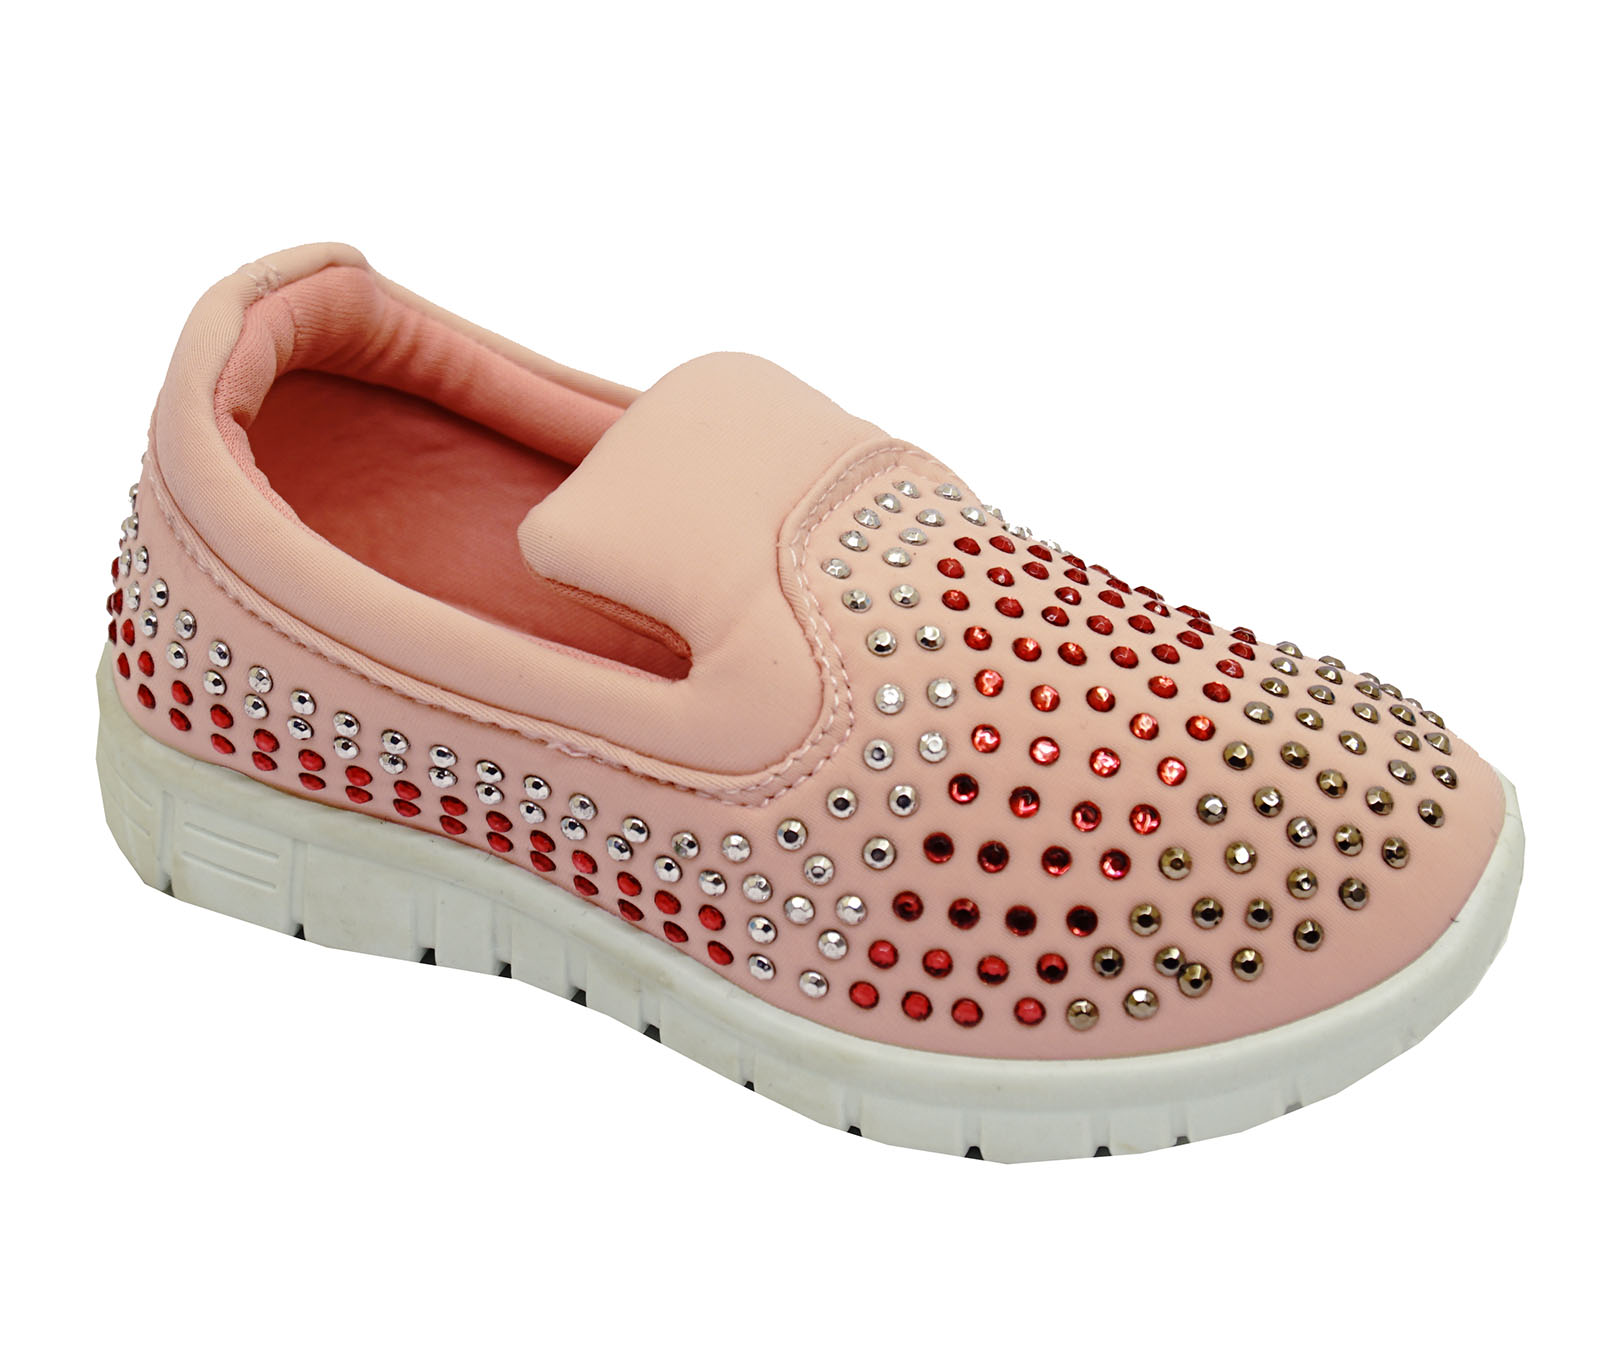 Niñas Niños Childrens Rosa Slip-on entrenadores Diamante Playera Zapatos De Salón Uk 10-3